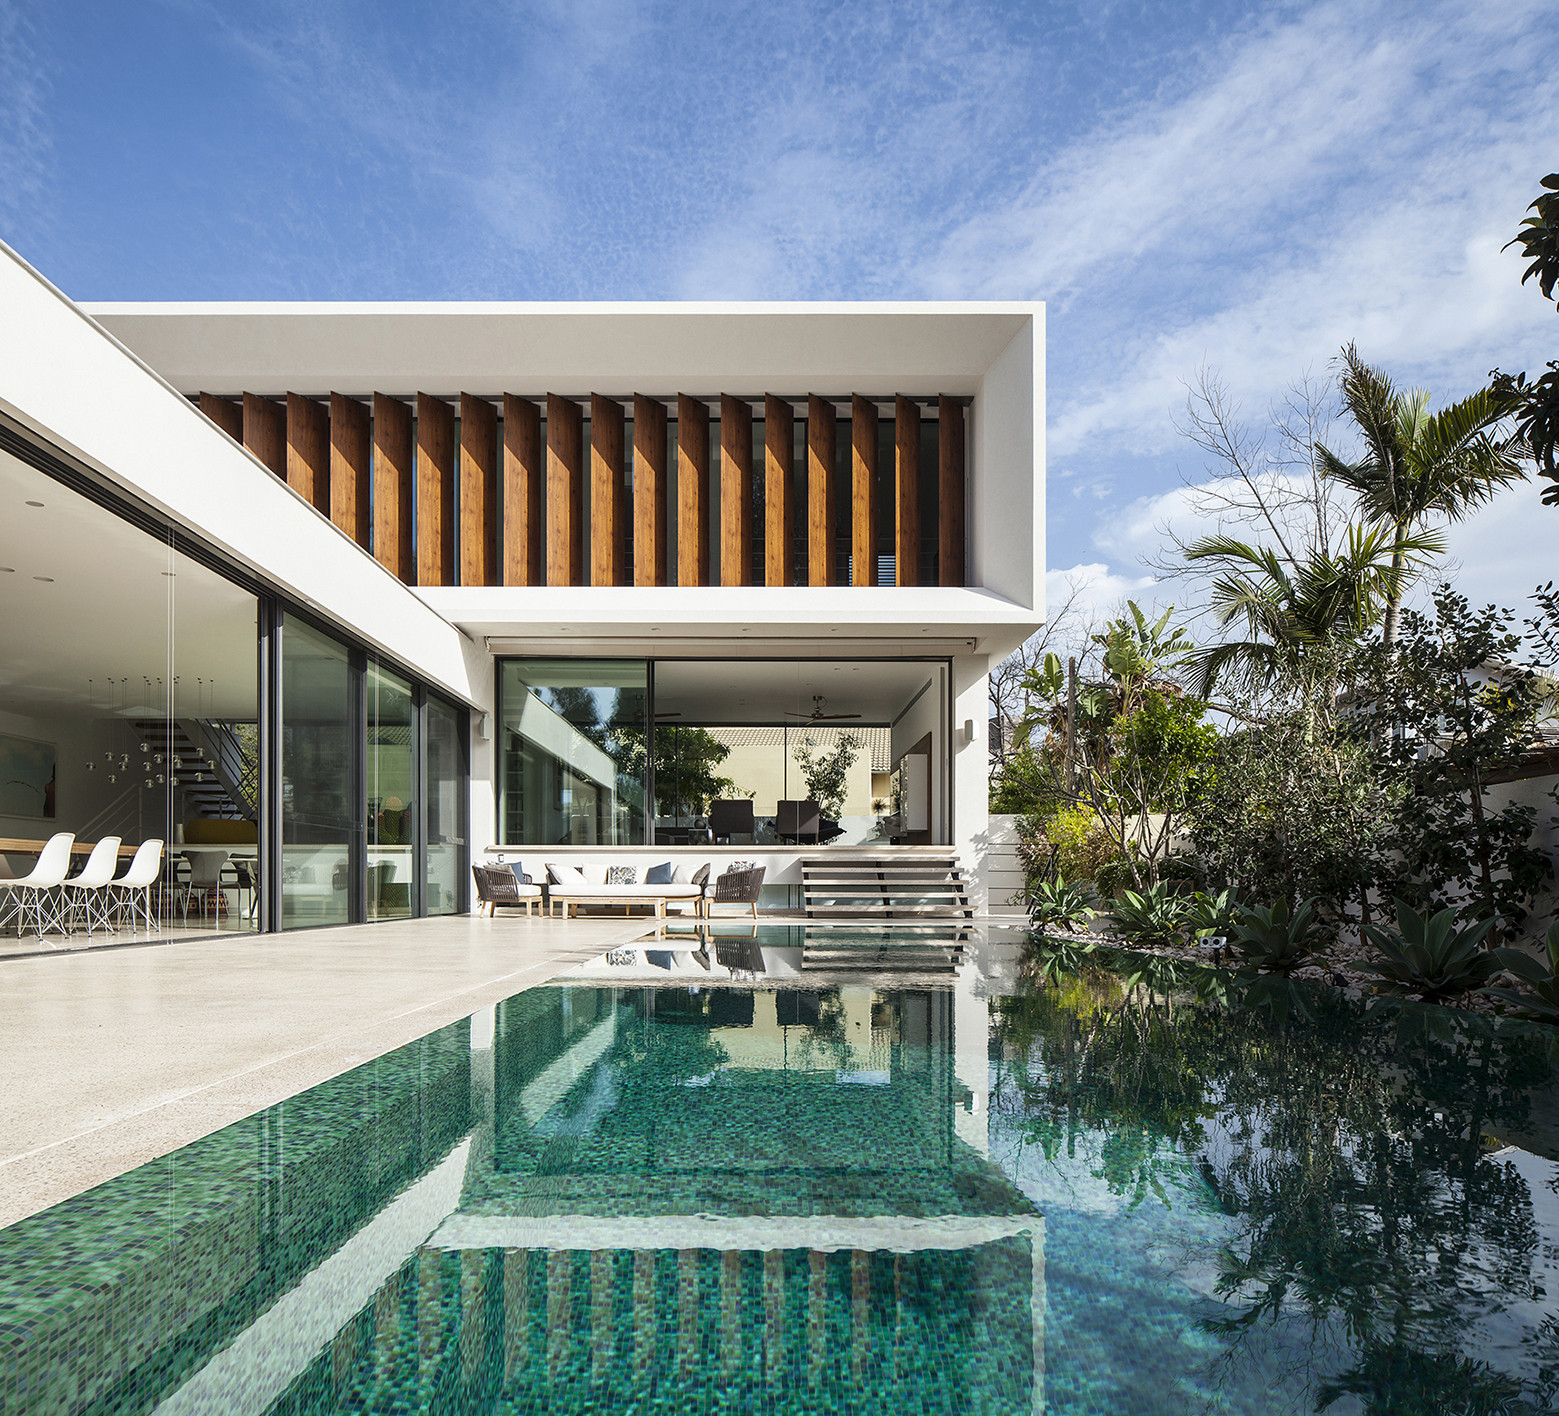 Mediterranean villa paz gersh architects archdaily for Pool villa design